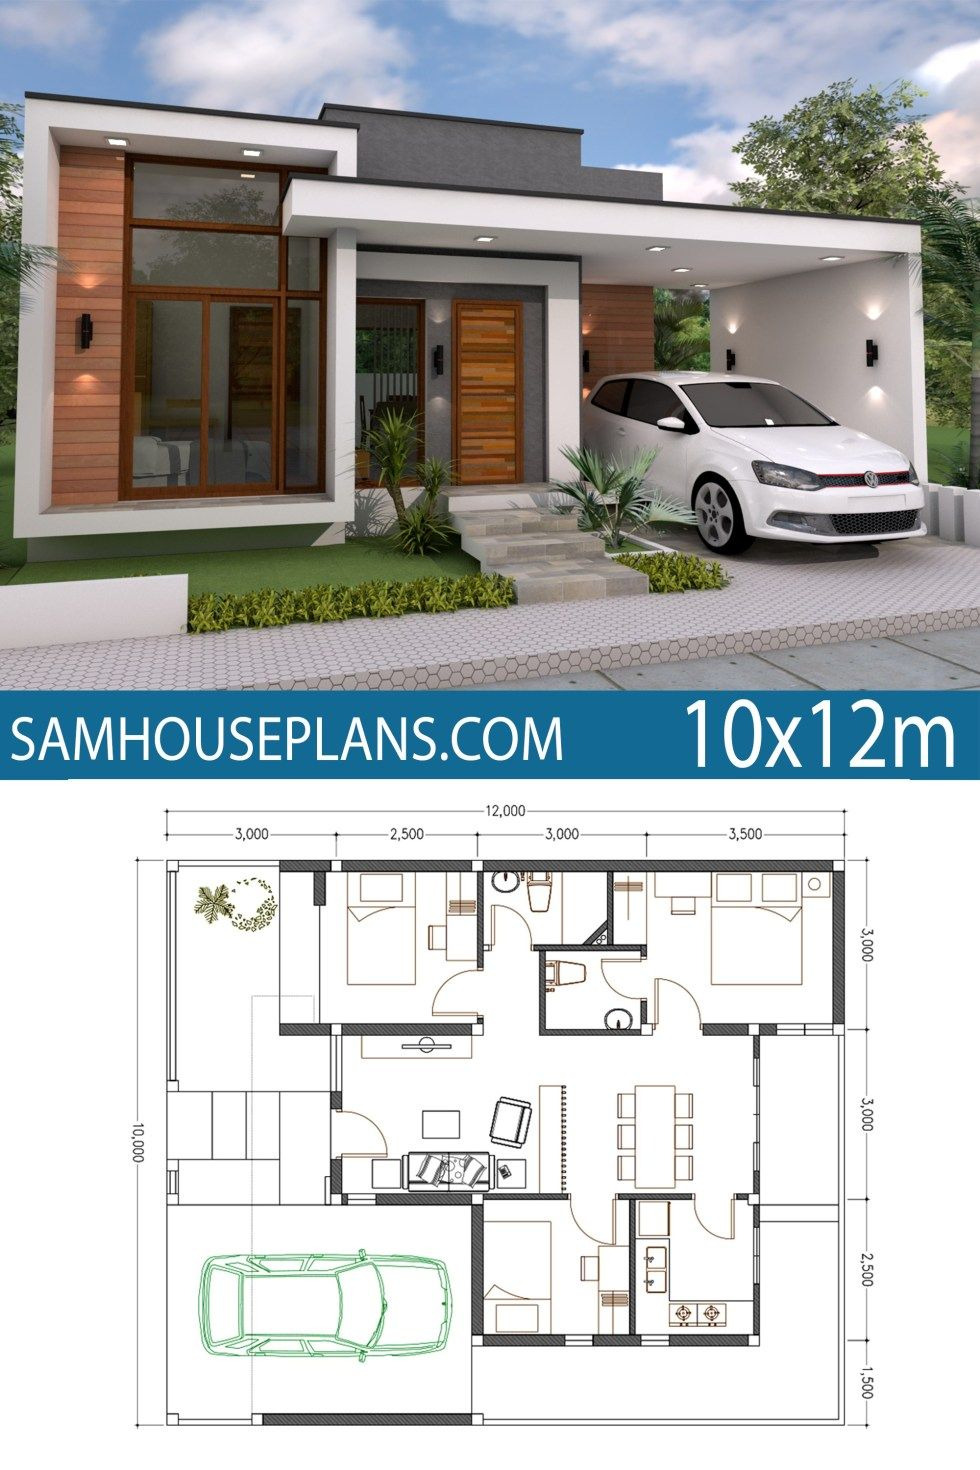 Modern Bungalow House Designs and Floor Plans Awesome Home Plan 10x12m 3 Bedrooms In 2020